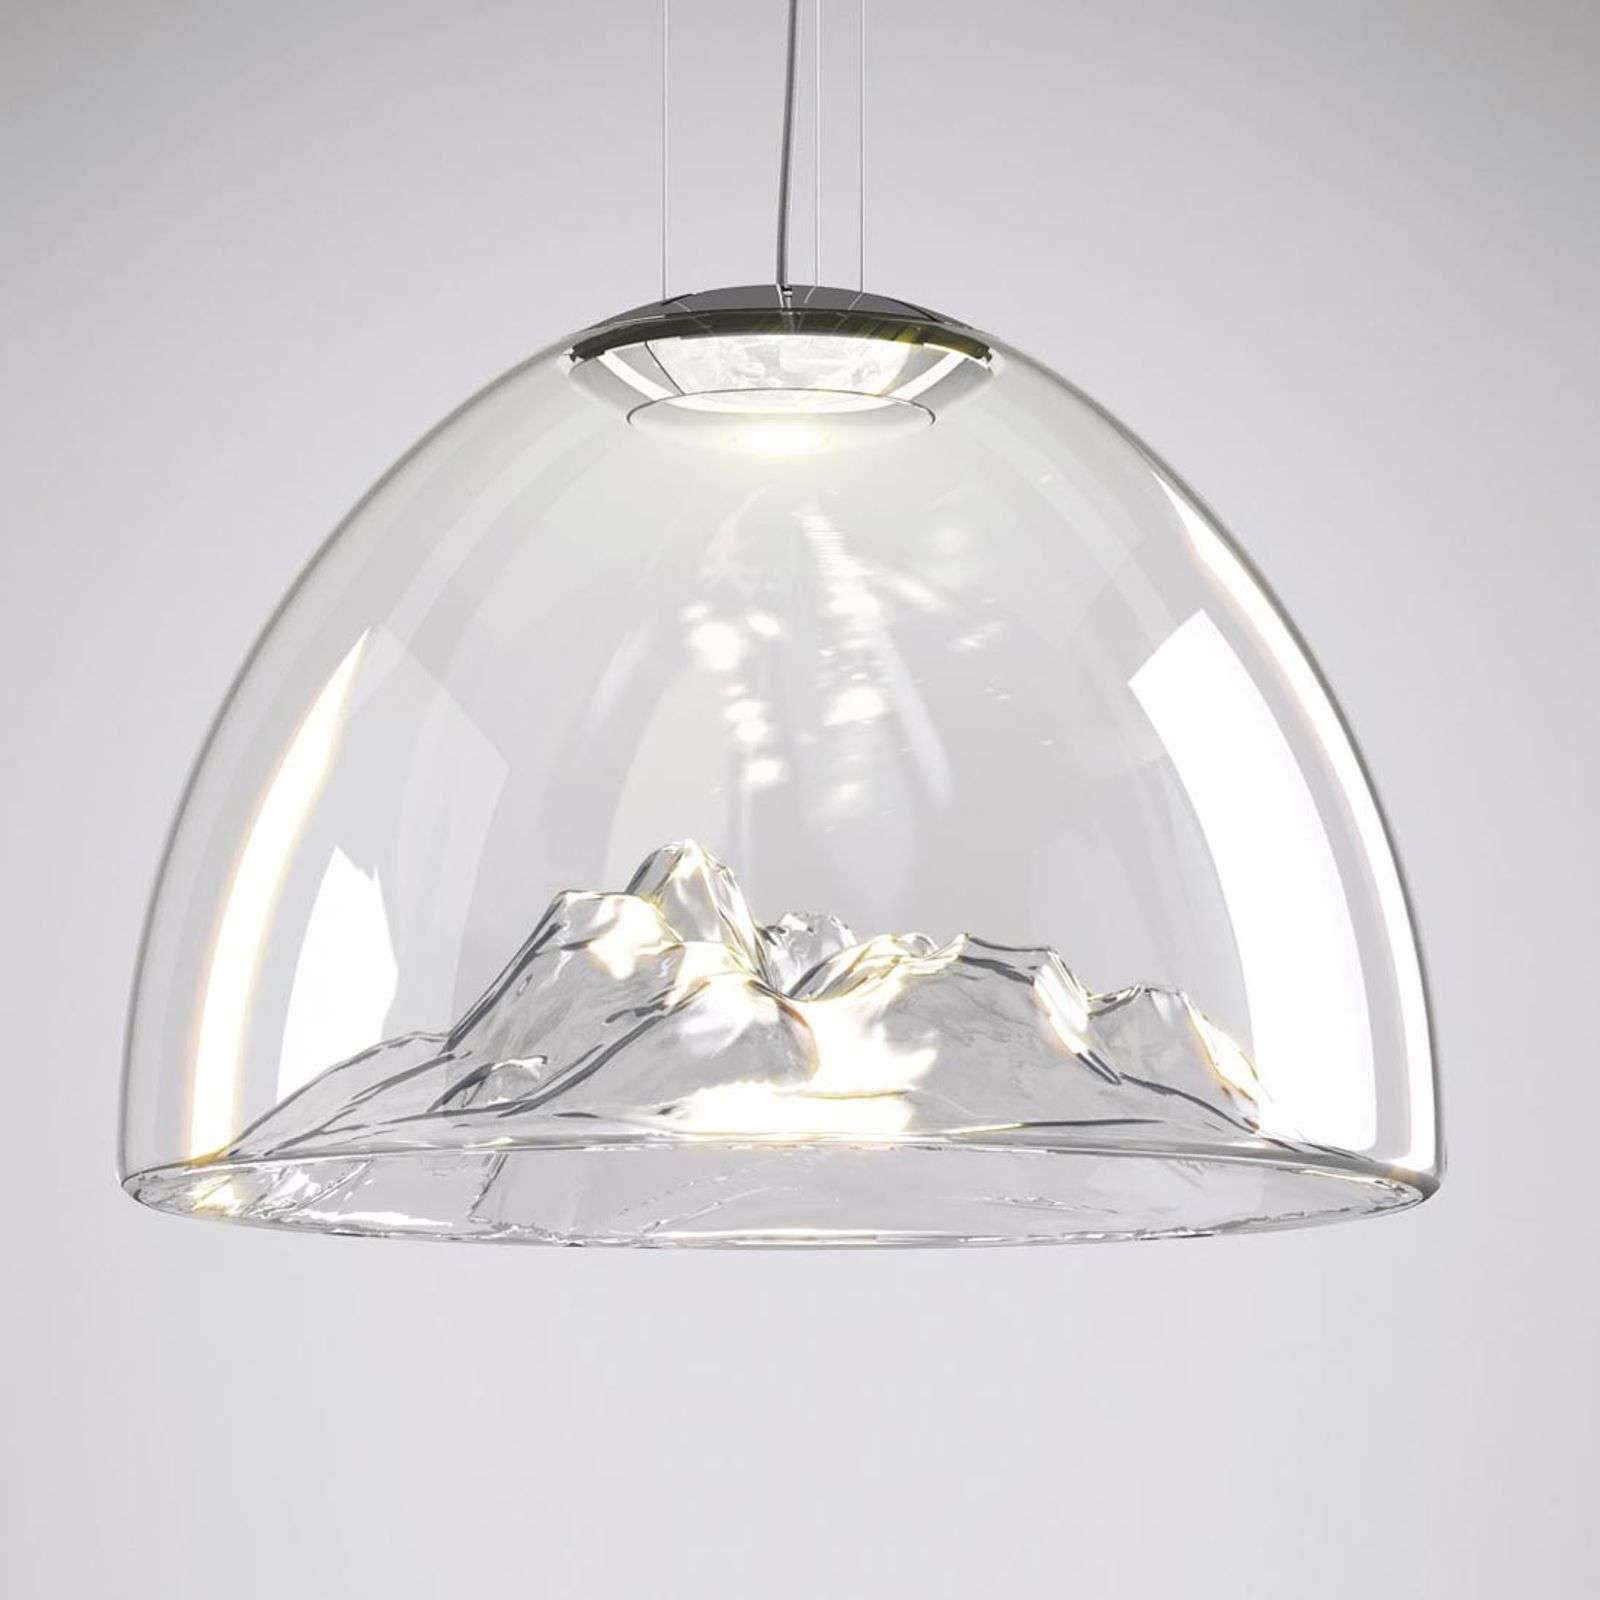 Suspension LED de designer originale Mountain View